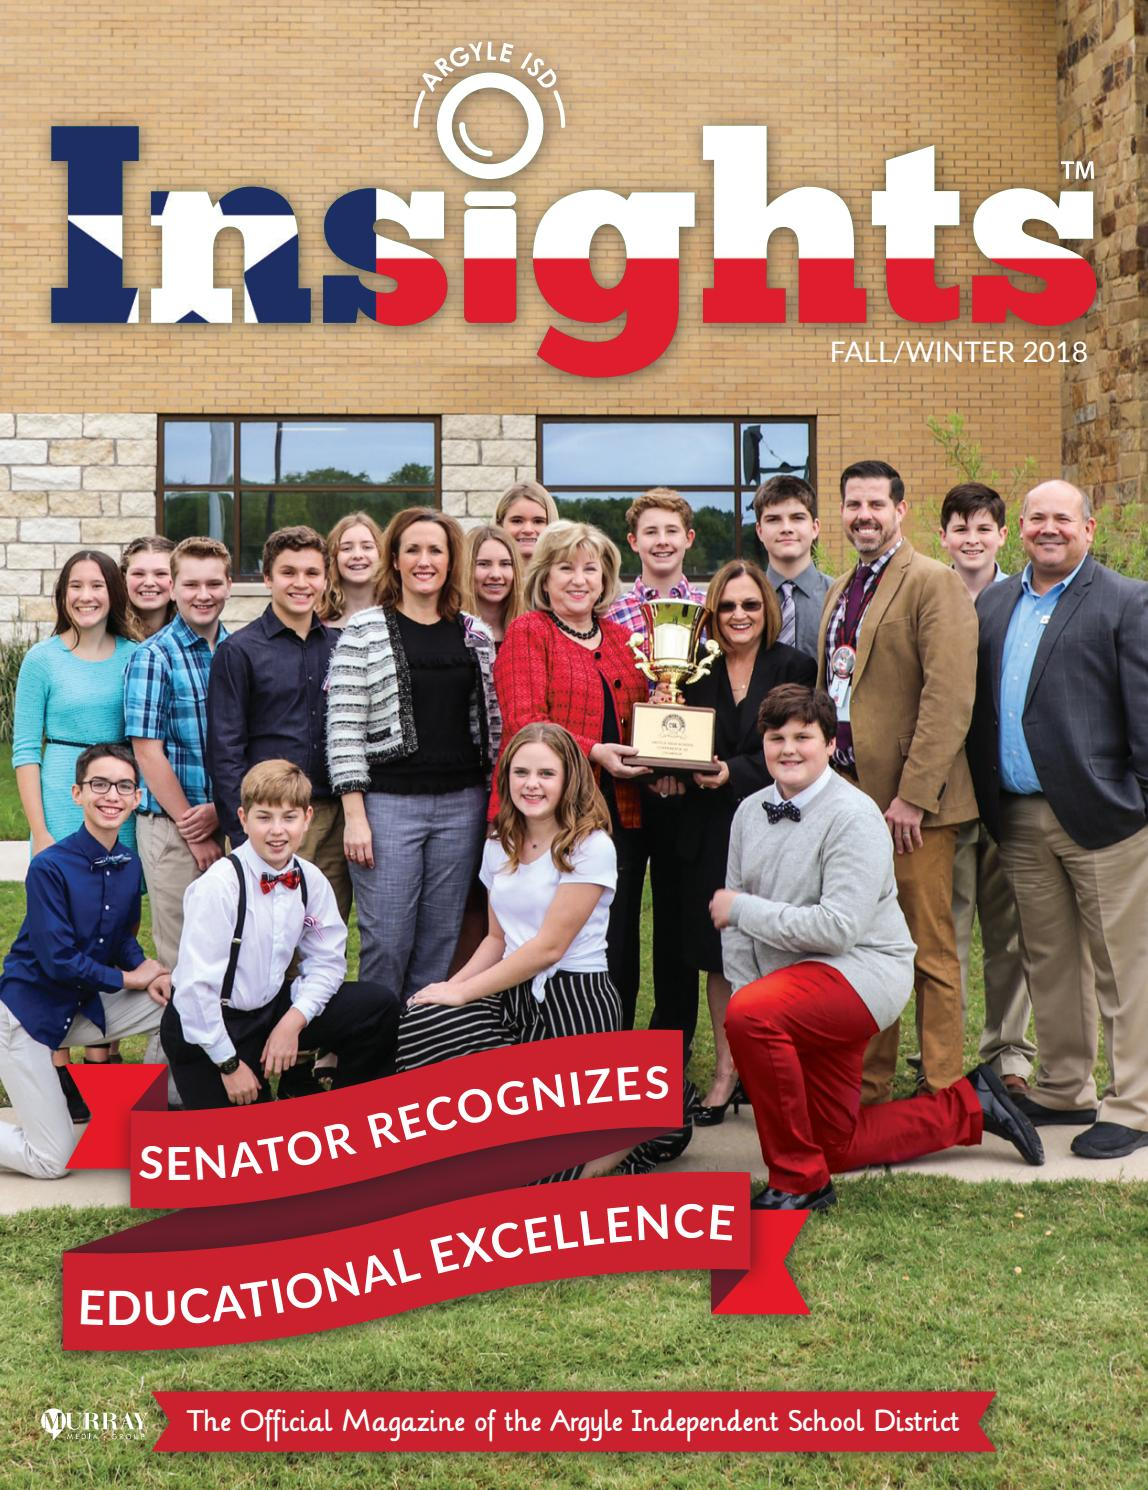 AISD Insights - Fall/Winter 2018